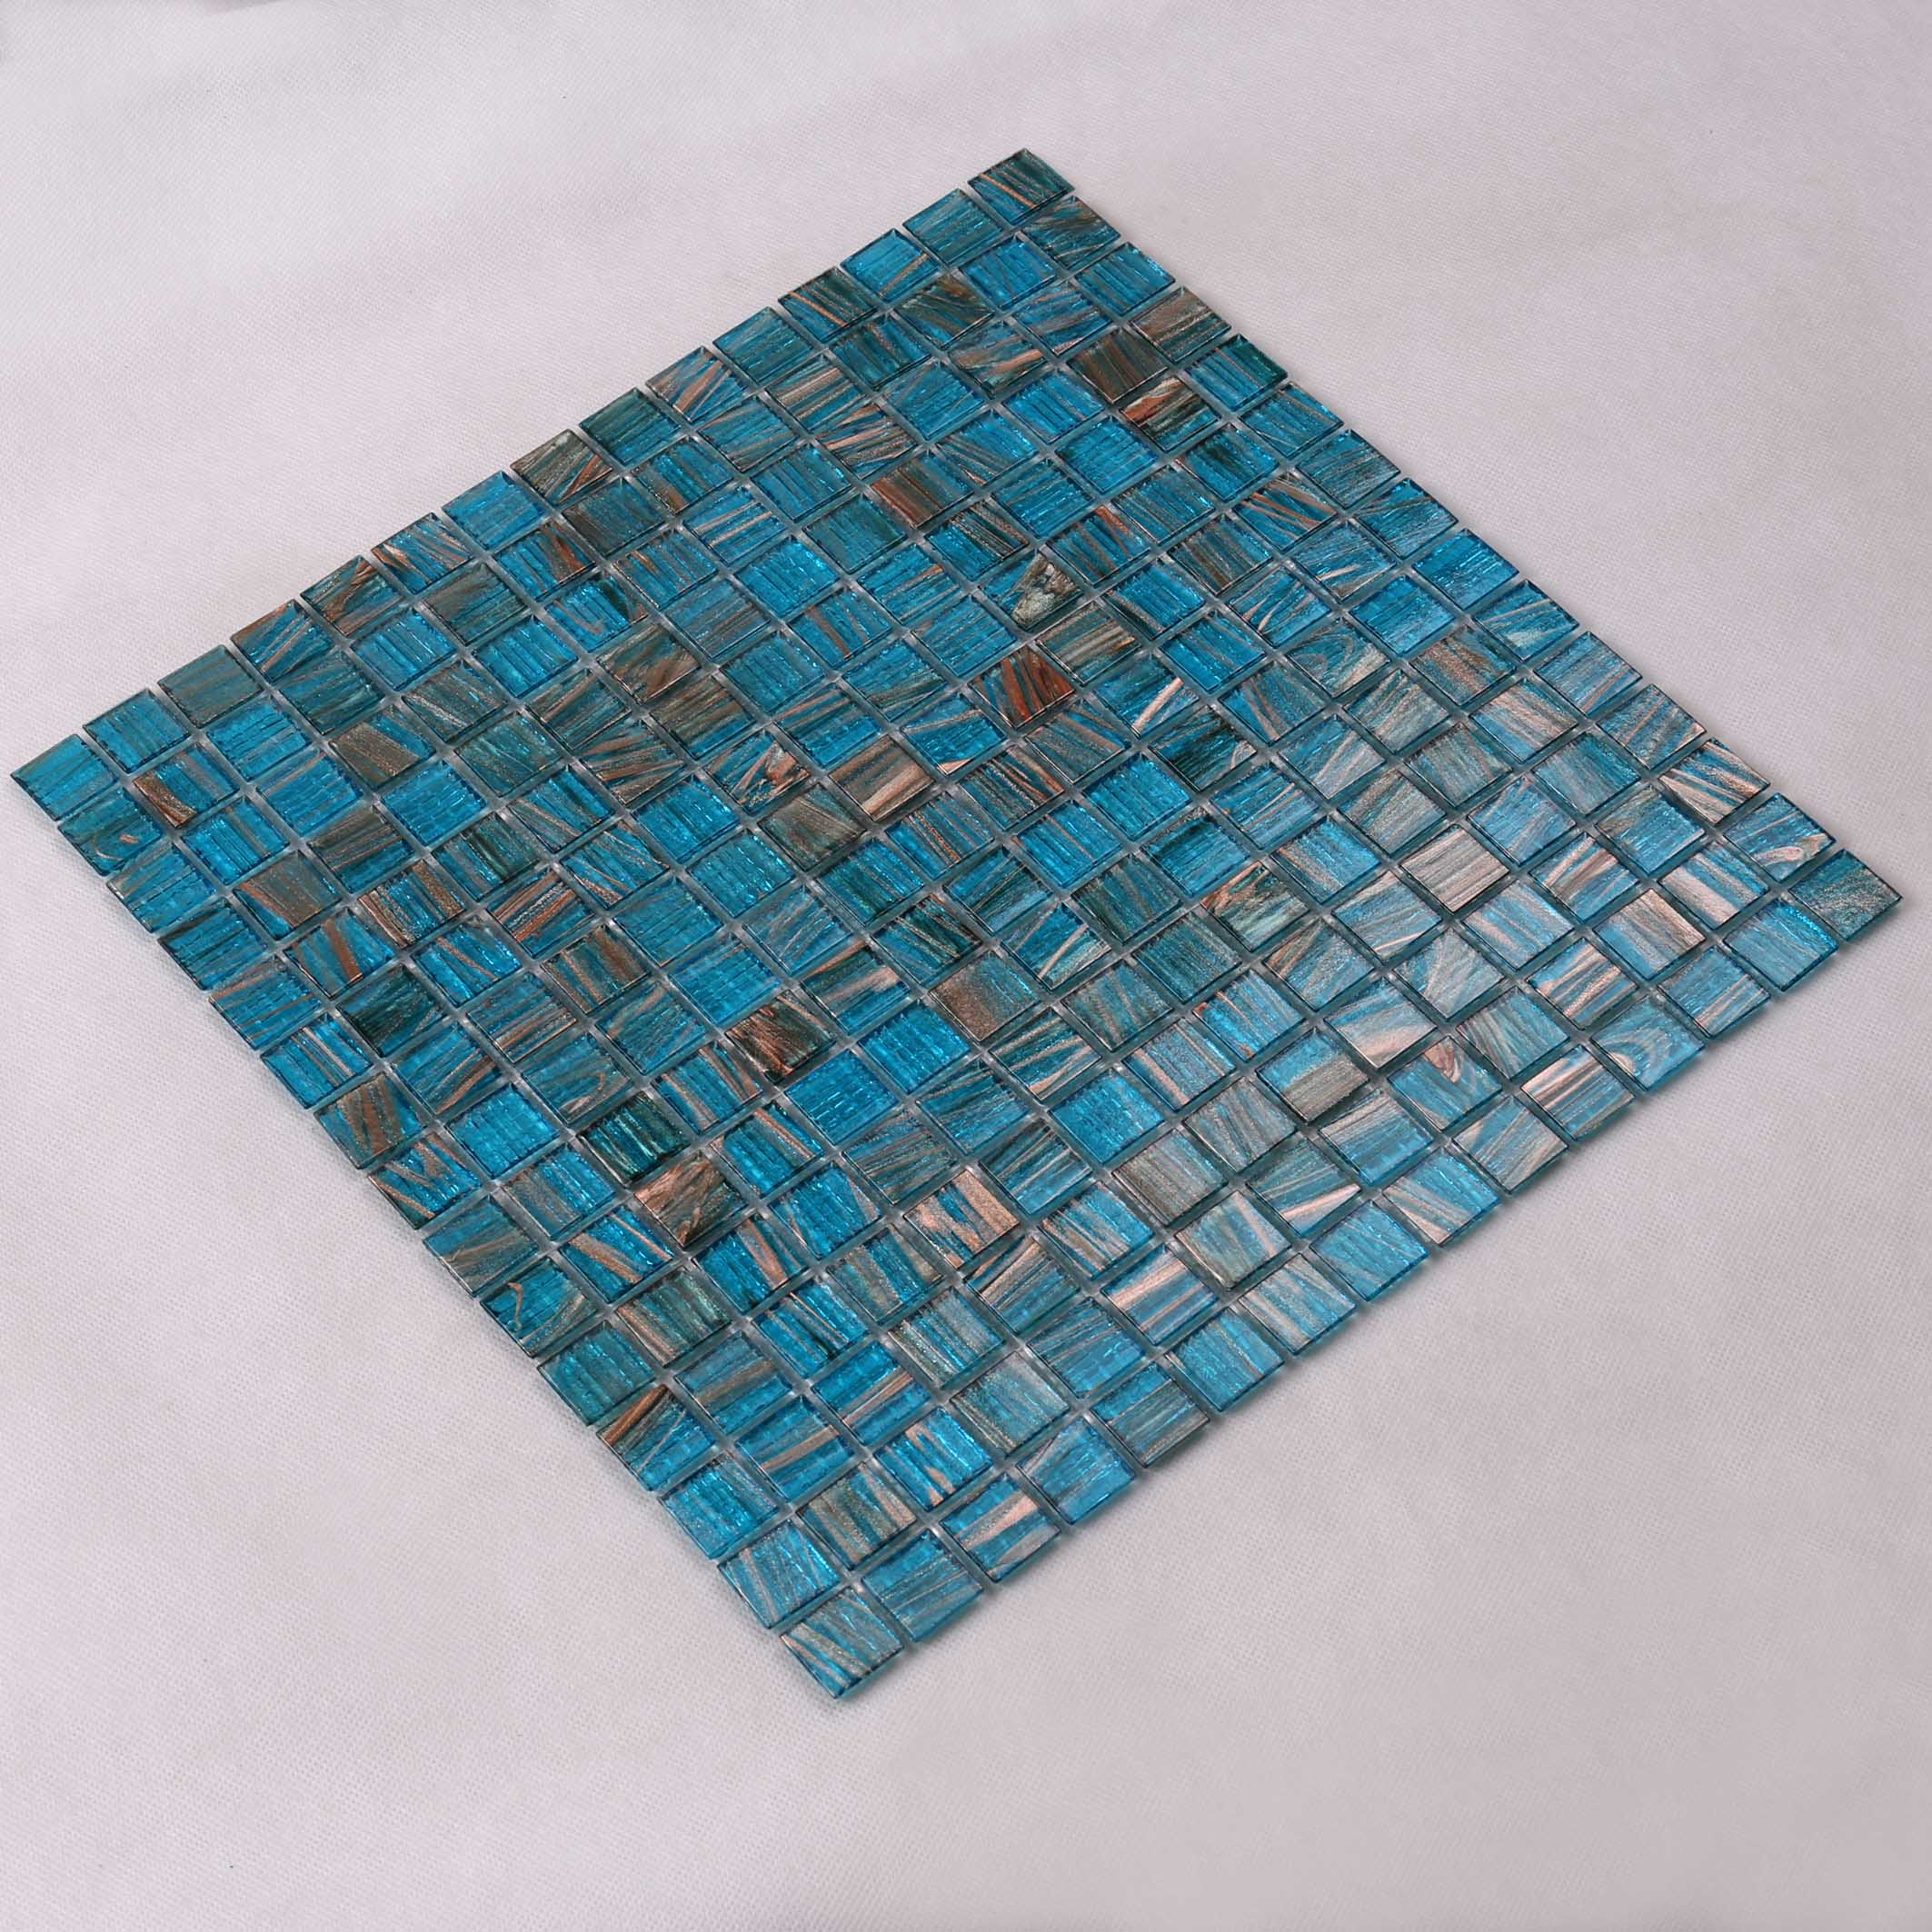 Heng Xing-Custom Pool Tile Manufacturer, Blue Glass Tile Backsplash | Pool Mosaic Tile-2